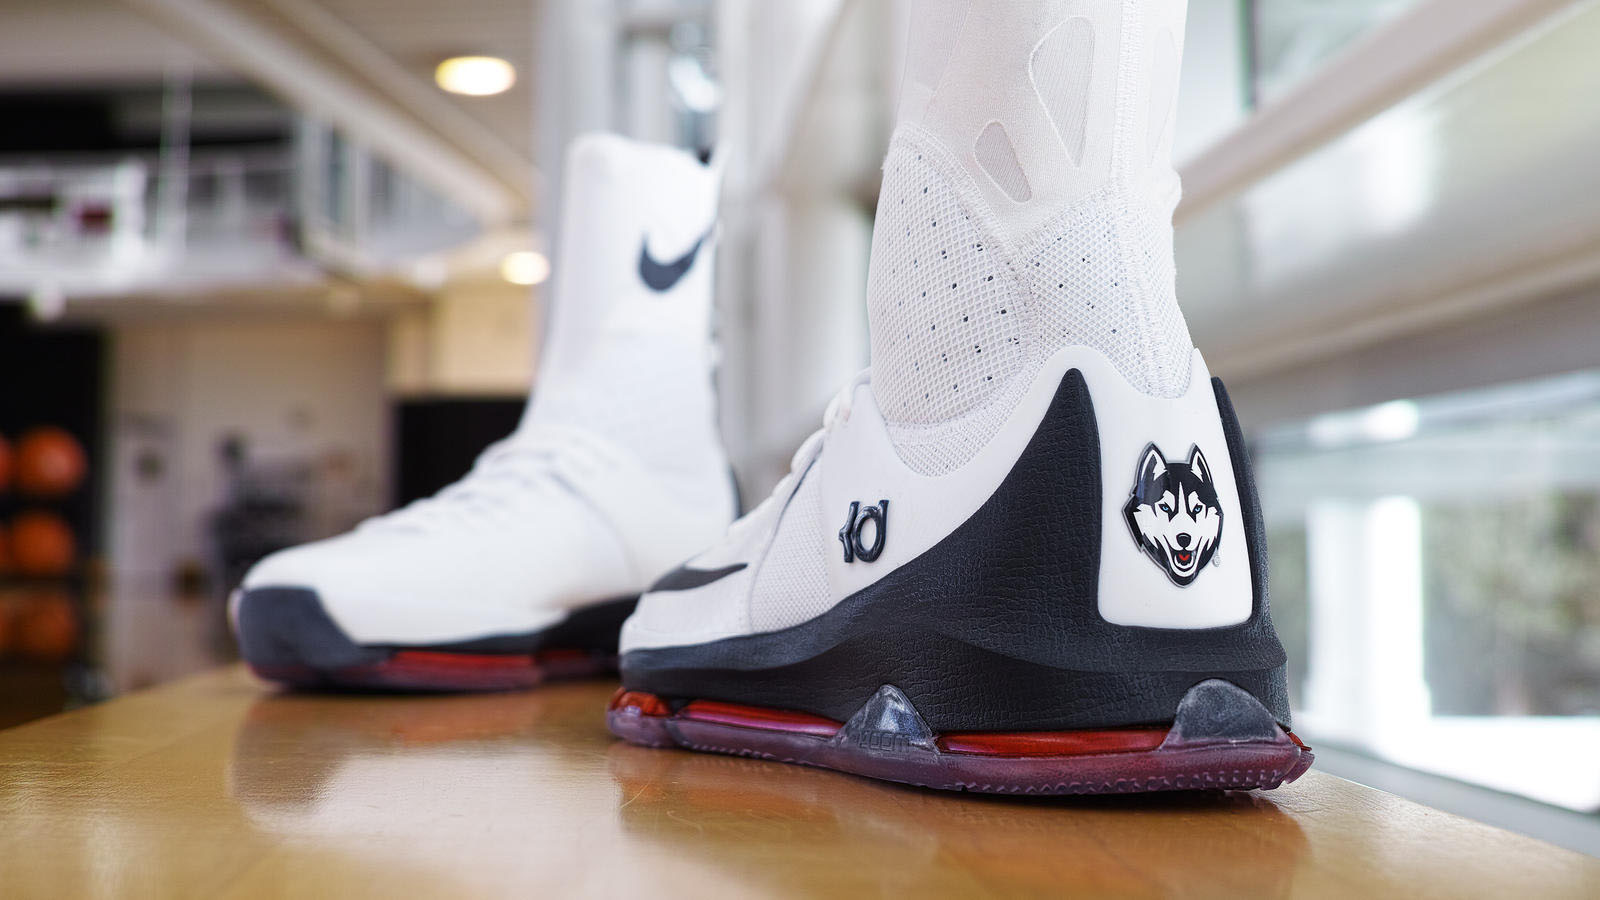 c89cff41bca00 ajordanxi Your  1 Source For Sneaker Release Dates  The UCONN ...